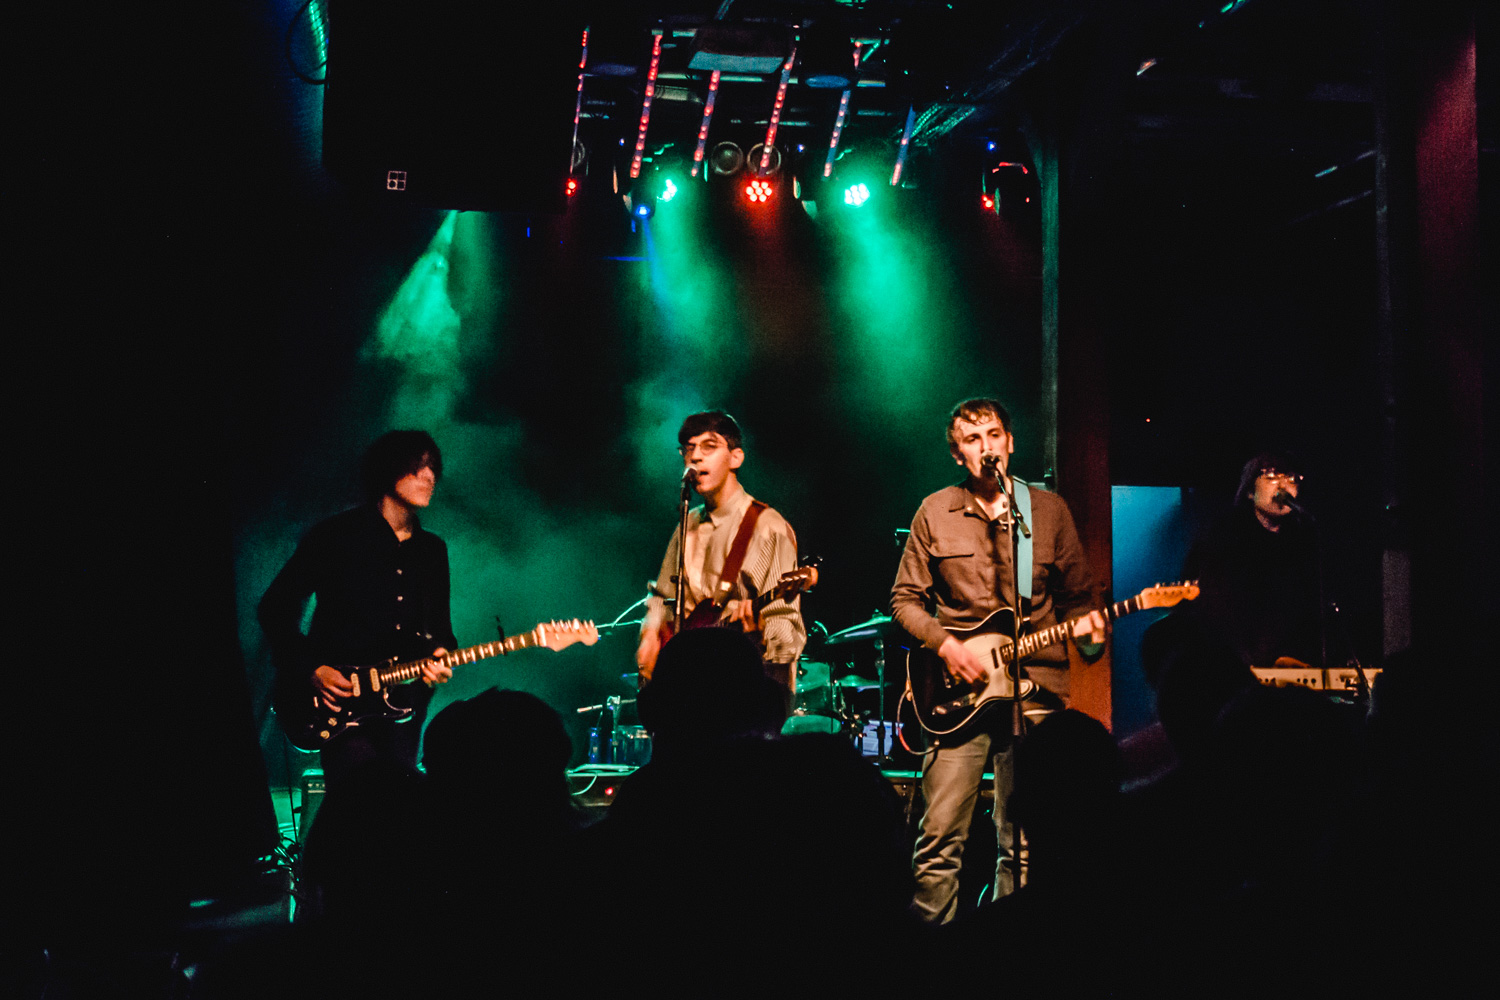 The Pains of Being Pure at Heart